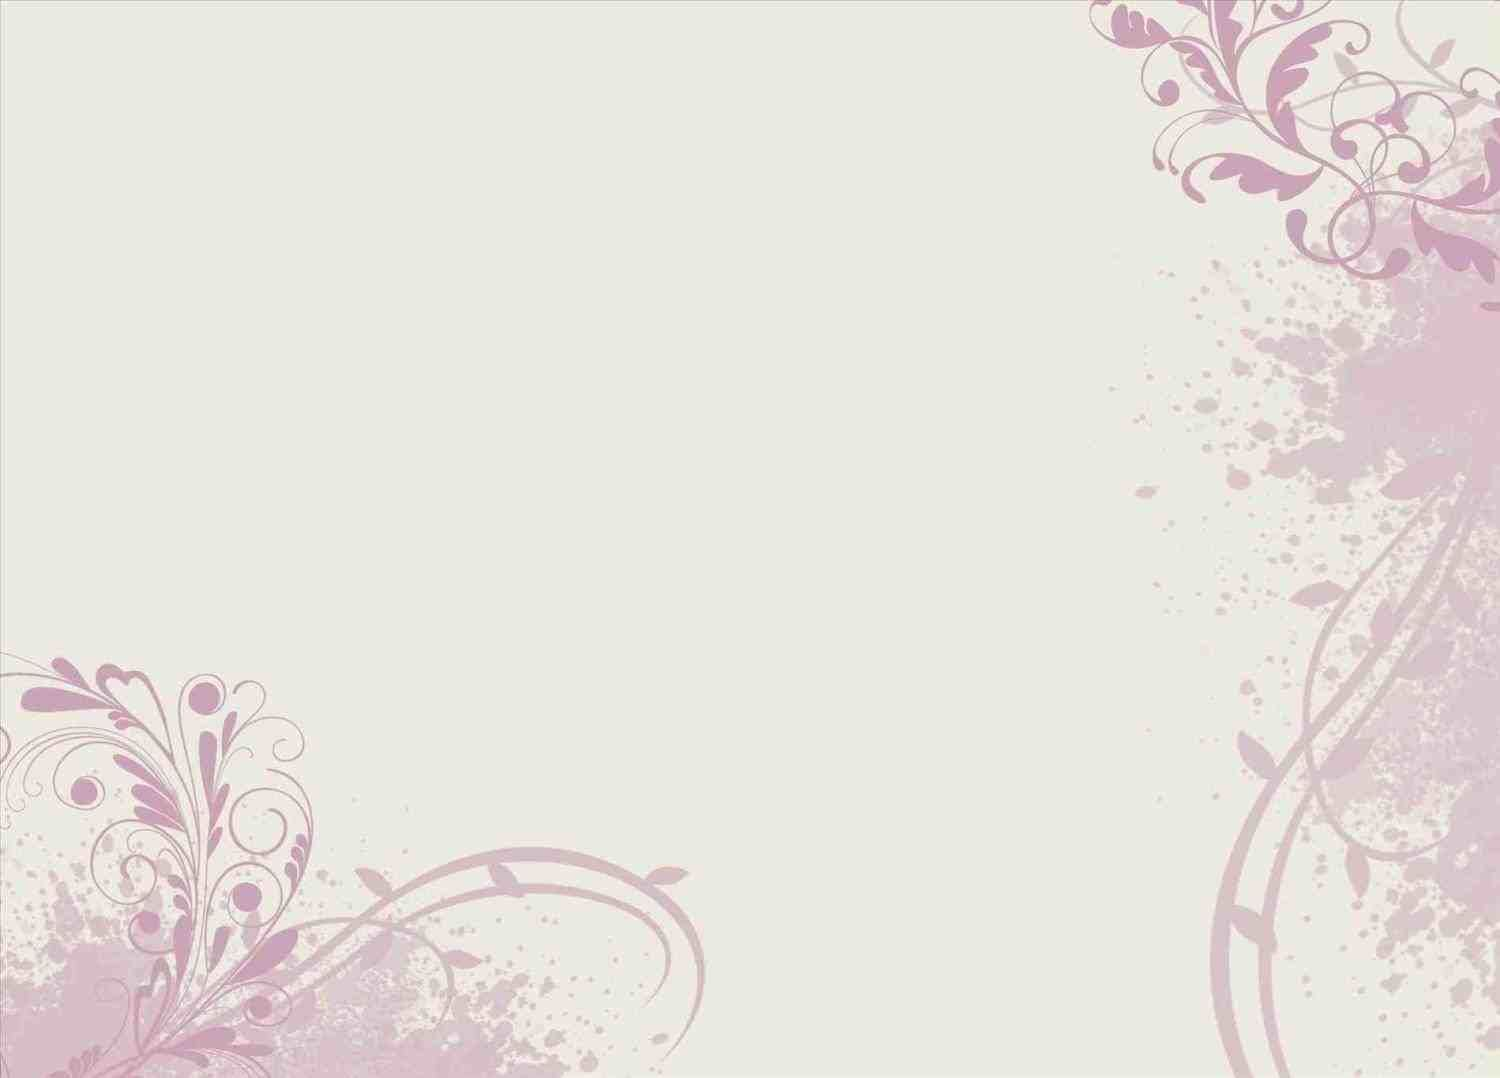 design full hd wedding card background image